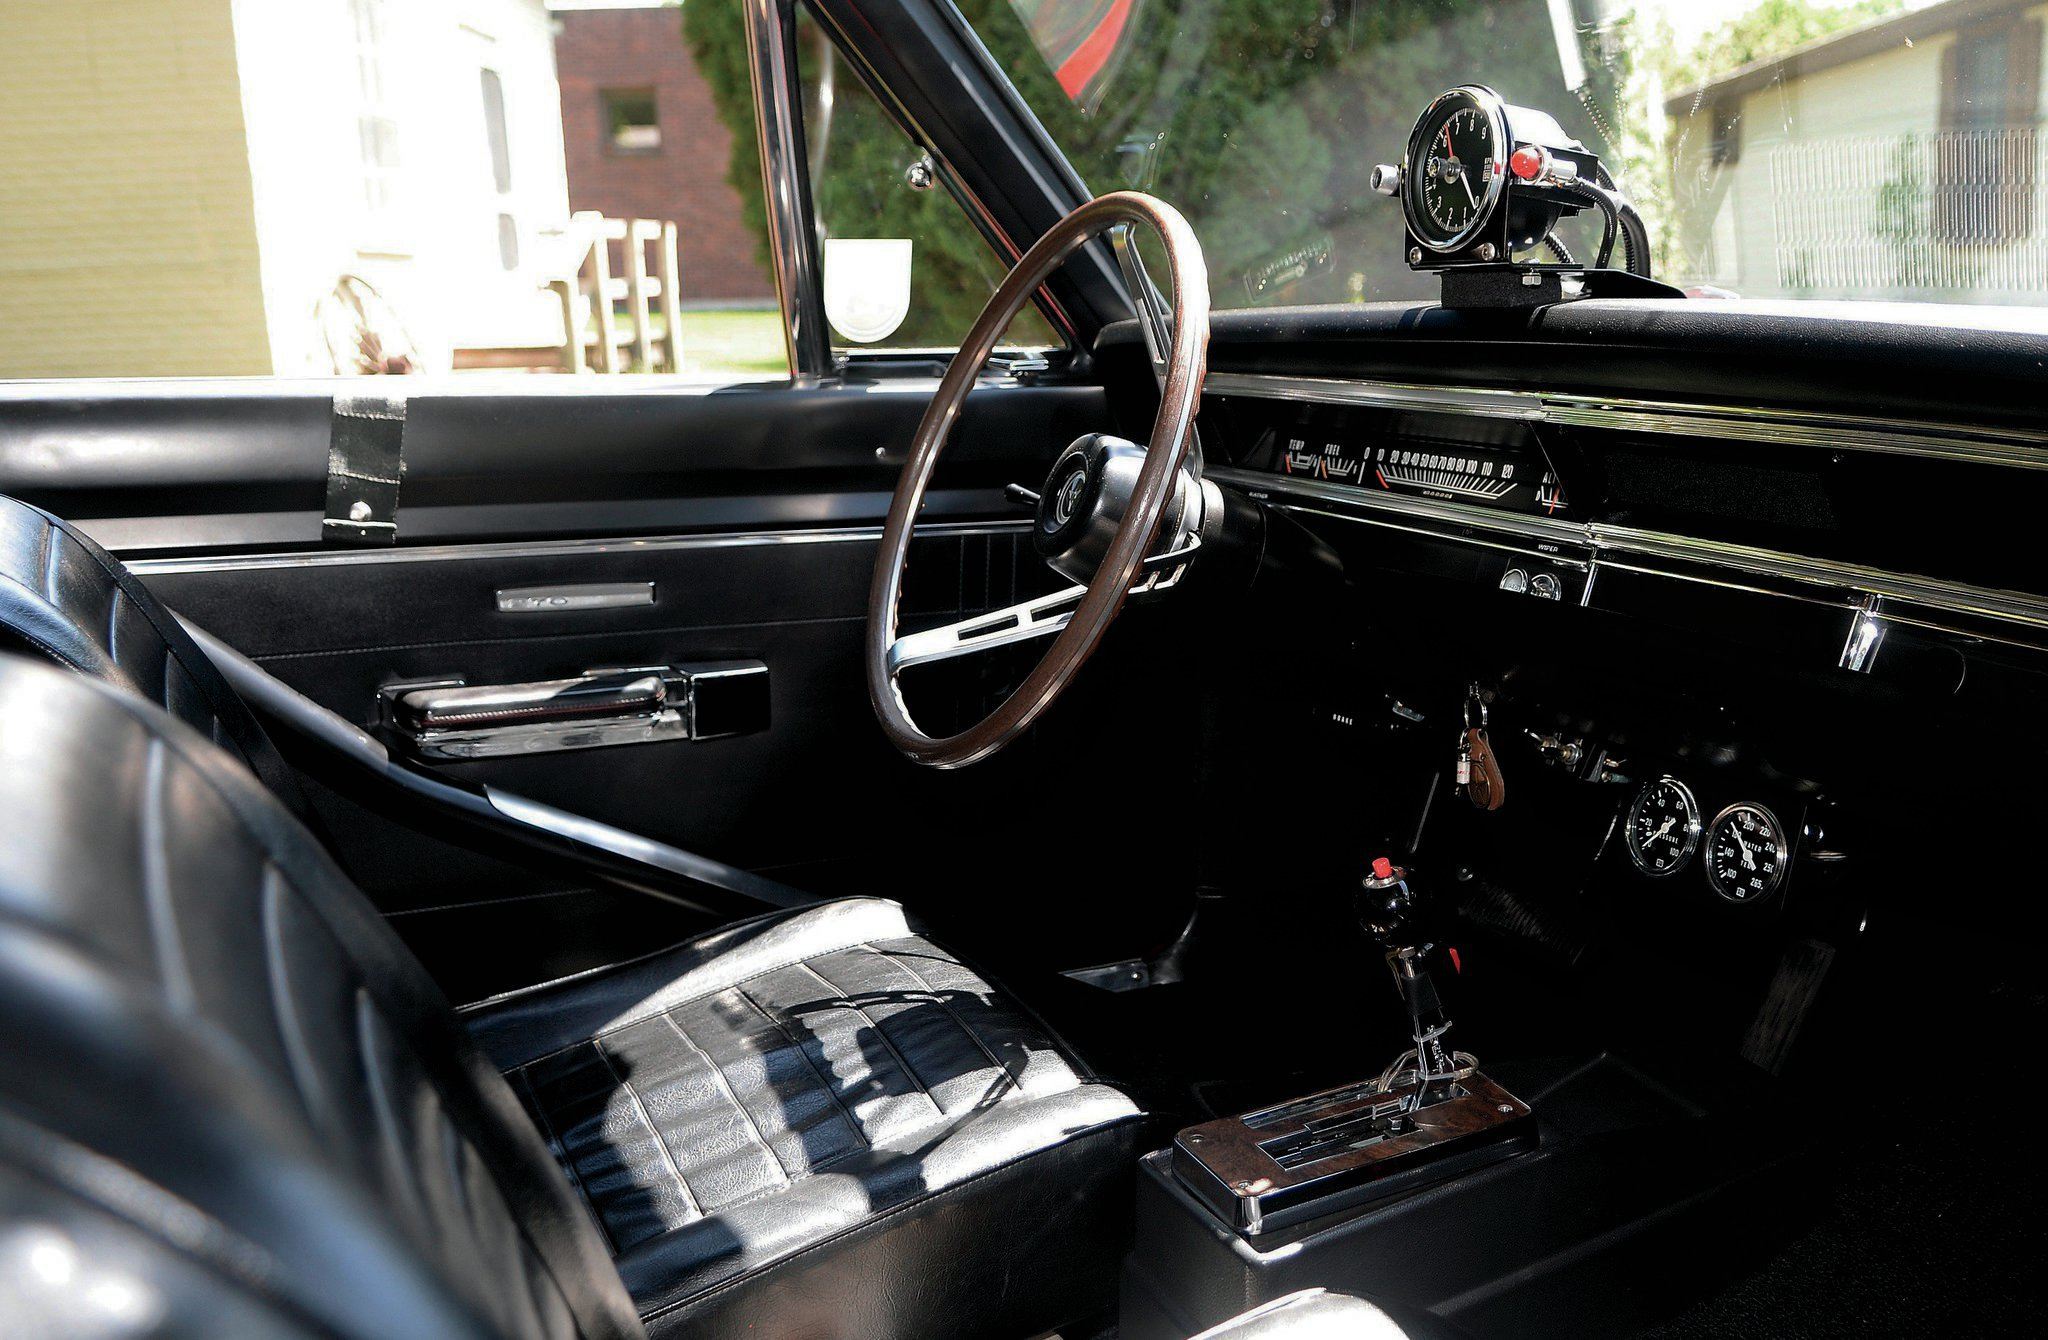 The interior of Daryl's Dart is similar to Dave's, but with two big differences: the factory Hurst Dual-Gate shifter for the TorqueFlite, and the steering wheel, which was originally in Dick Landy's Hemi Dart.